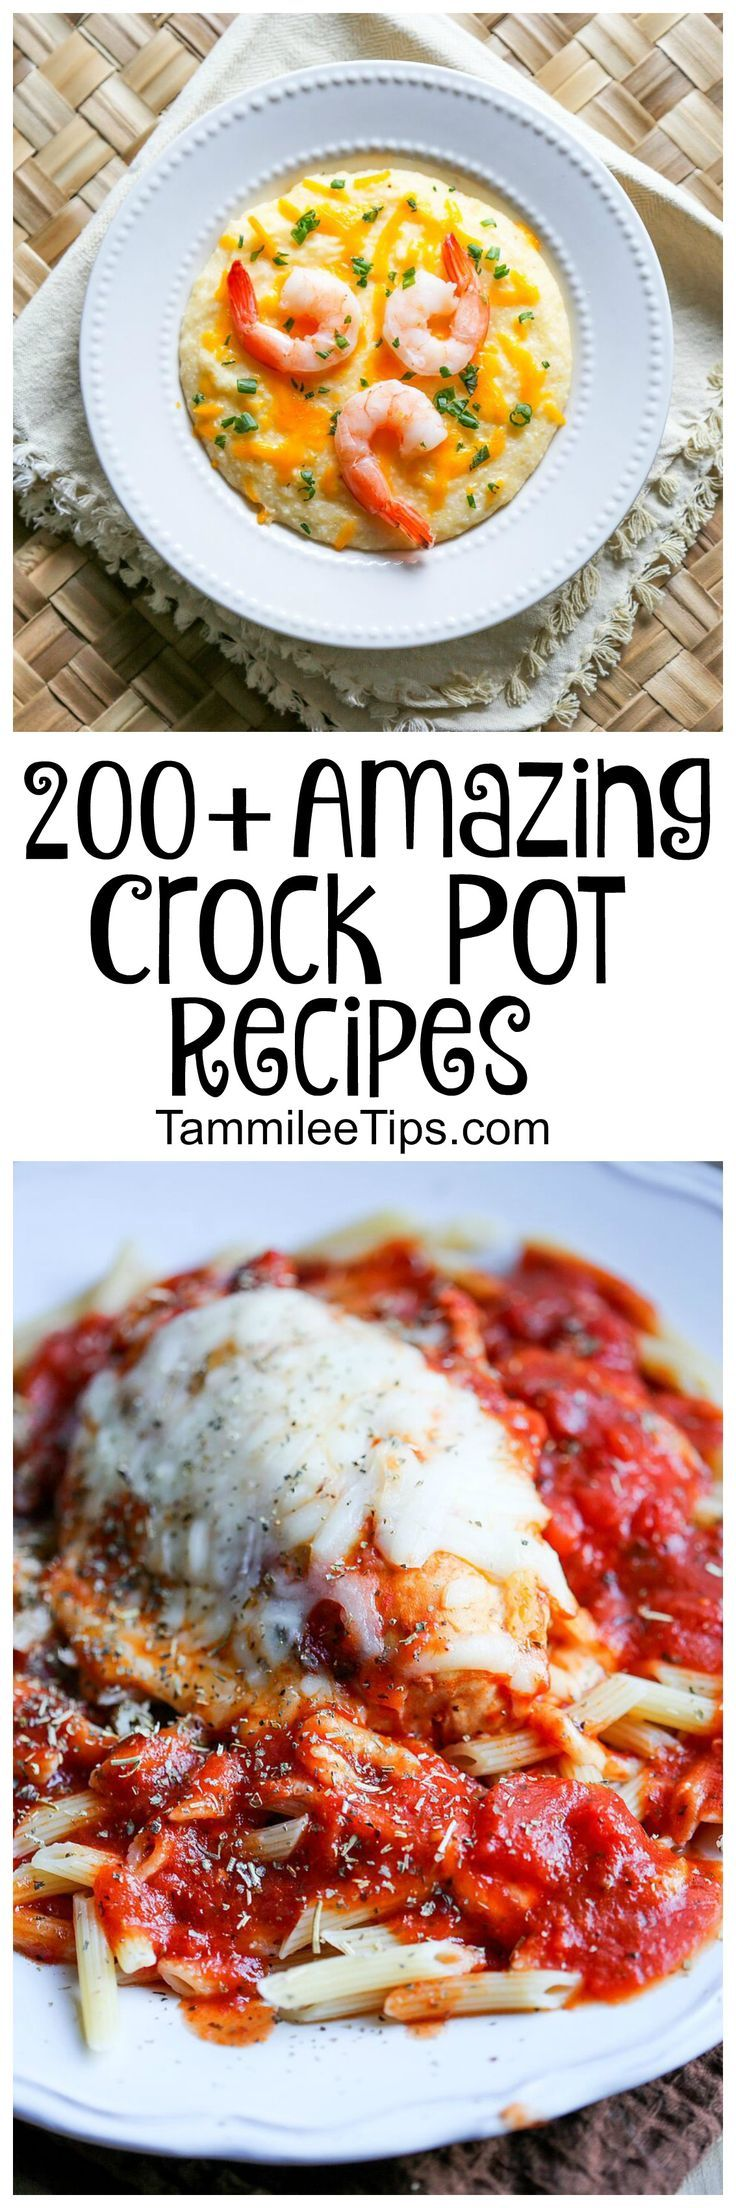 Over 200 amazing Crock Pot Recipes and meals! Chicken, soups, pastas, casseroles, breakfast, lunch, appetizers, desserts, chili and more! These slow cooker recipes are easy to make and taste amazing!